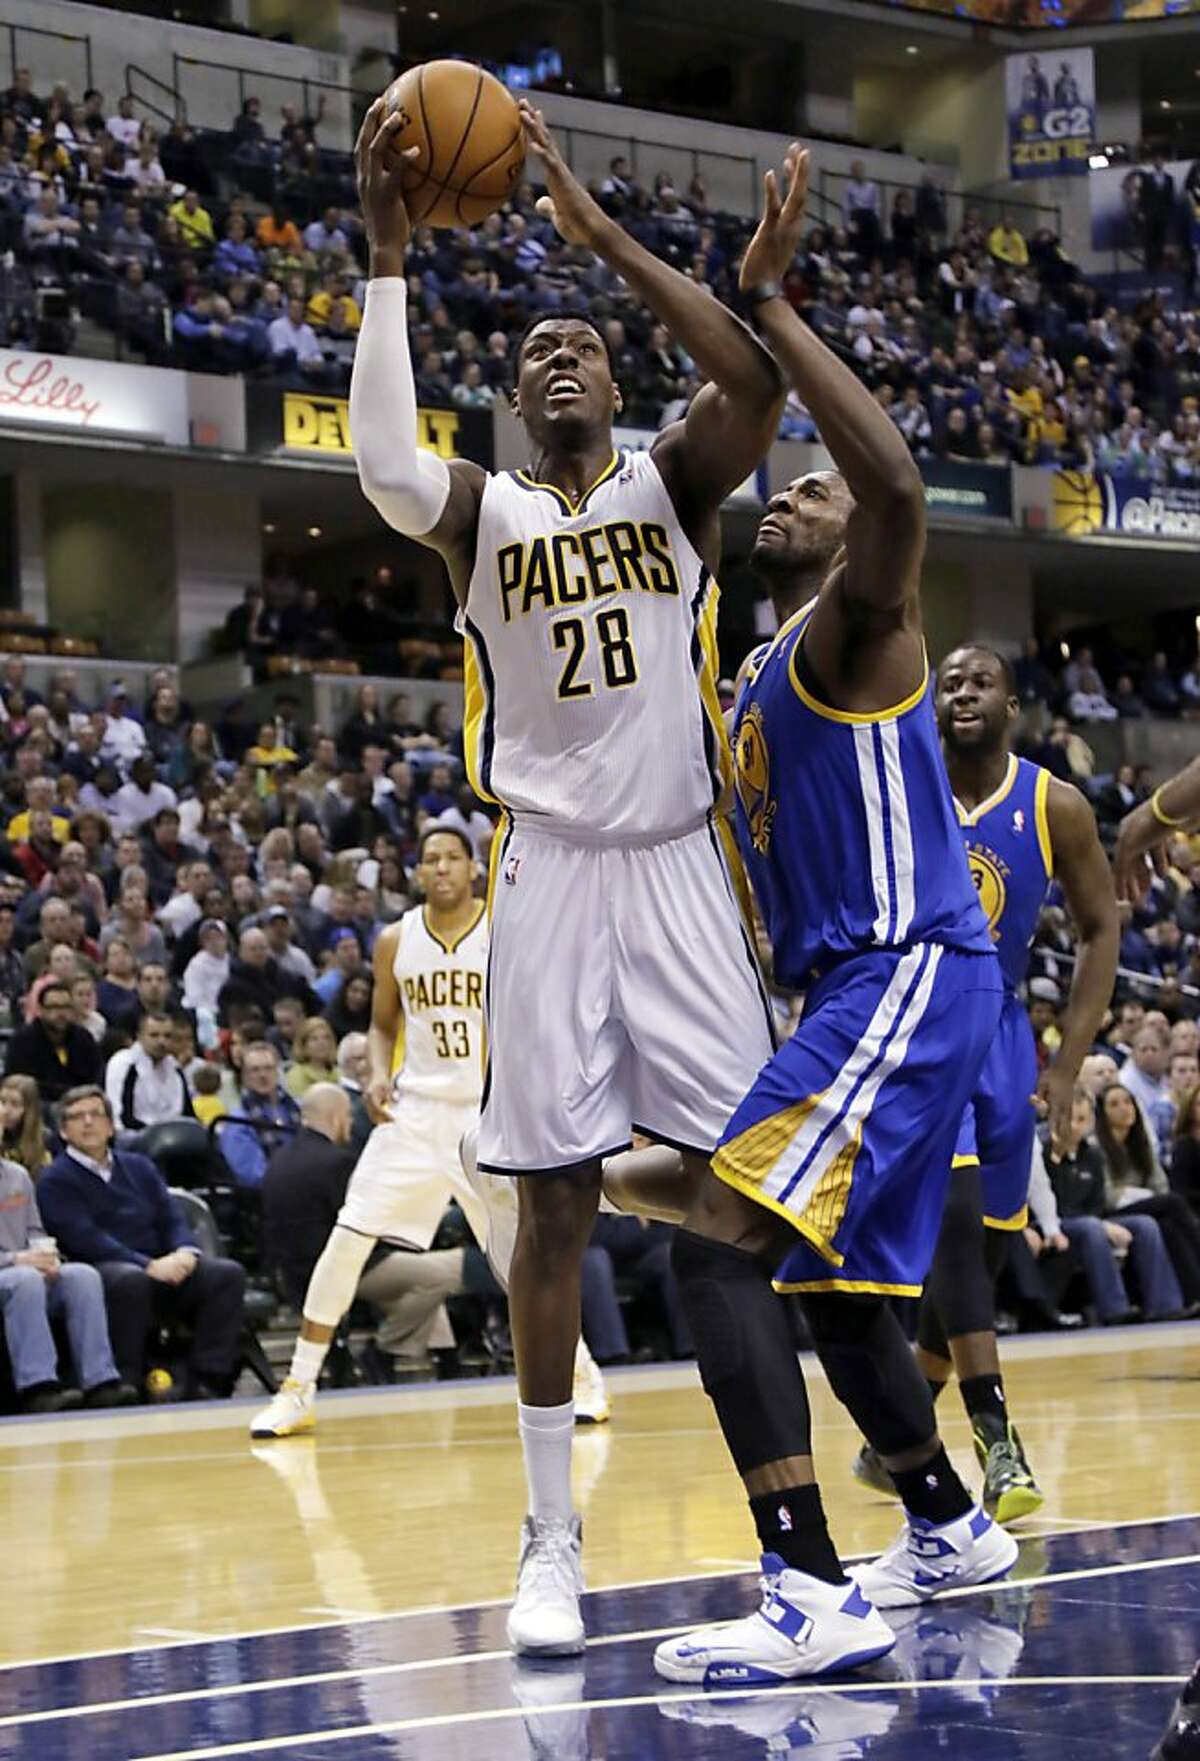 Warriors lose to Pacers, 108-97